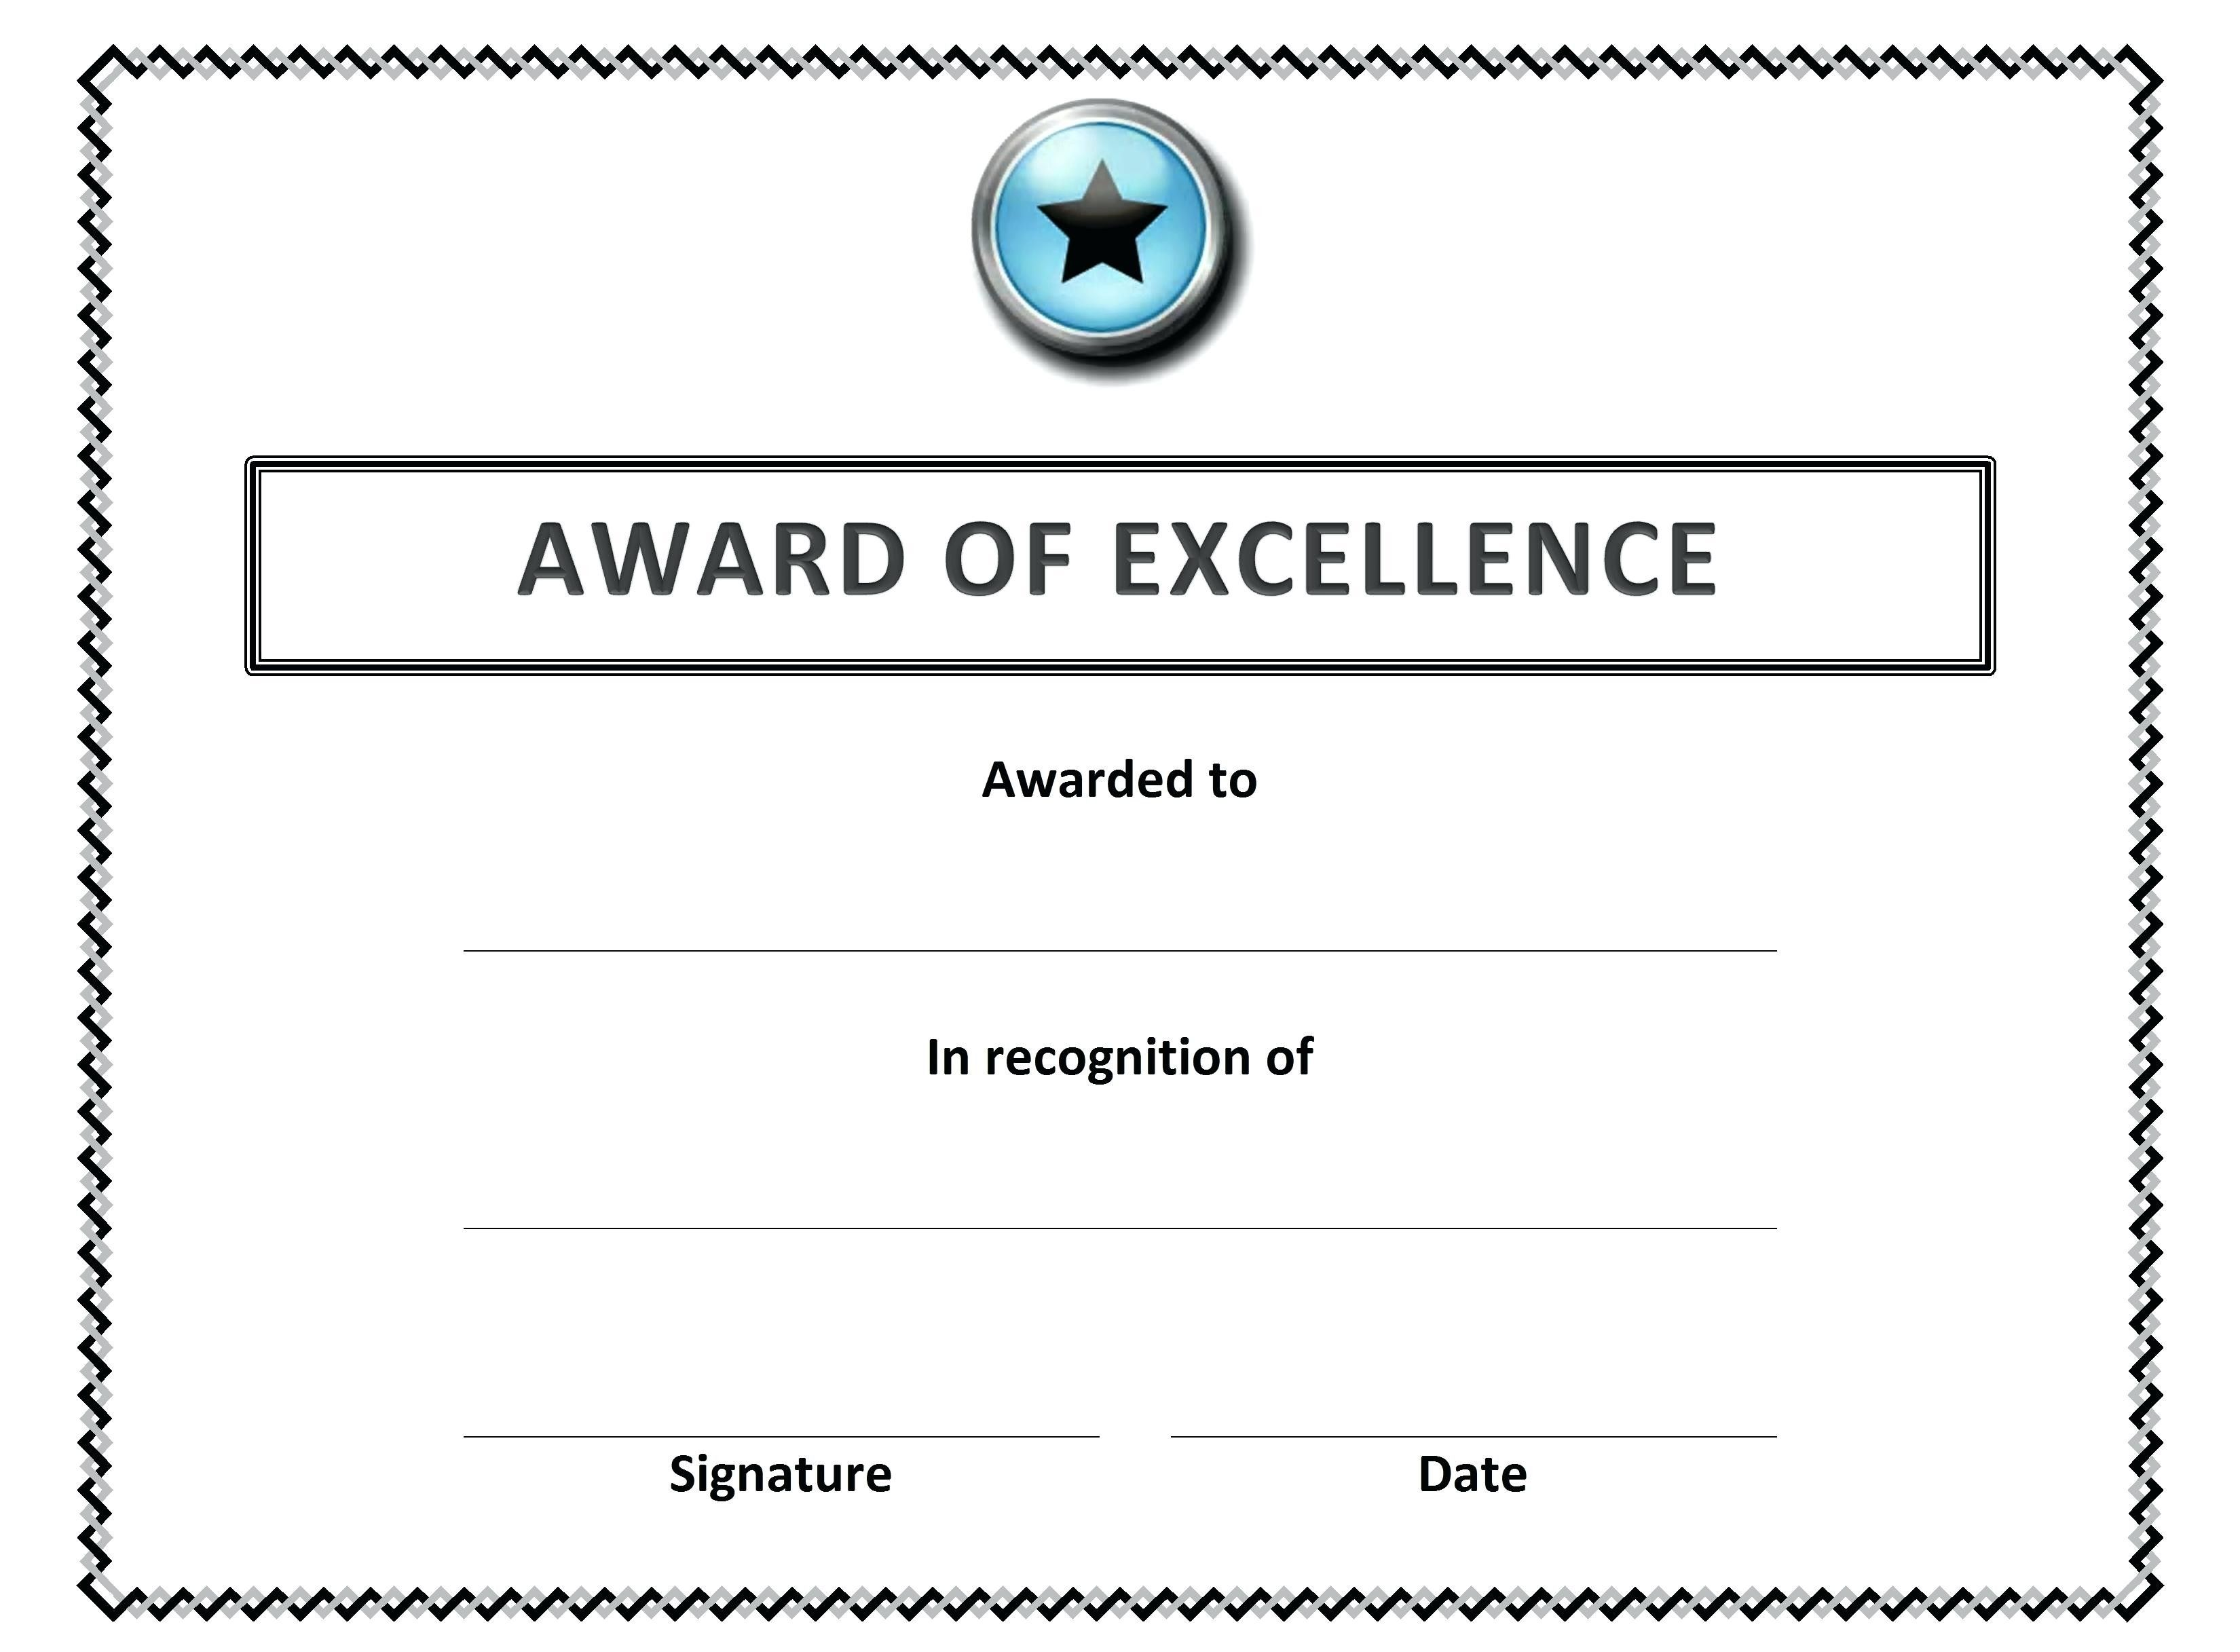 Free Download Certificate Templates For Word Save Template Award